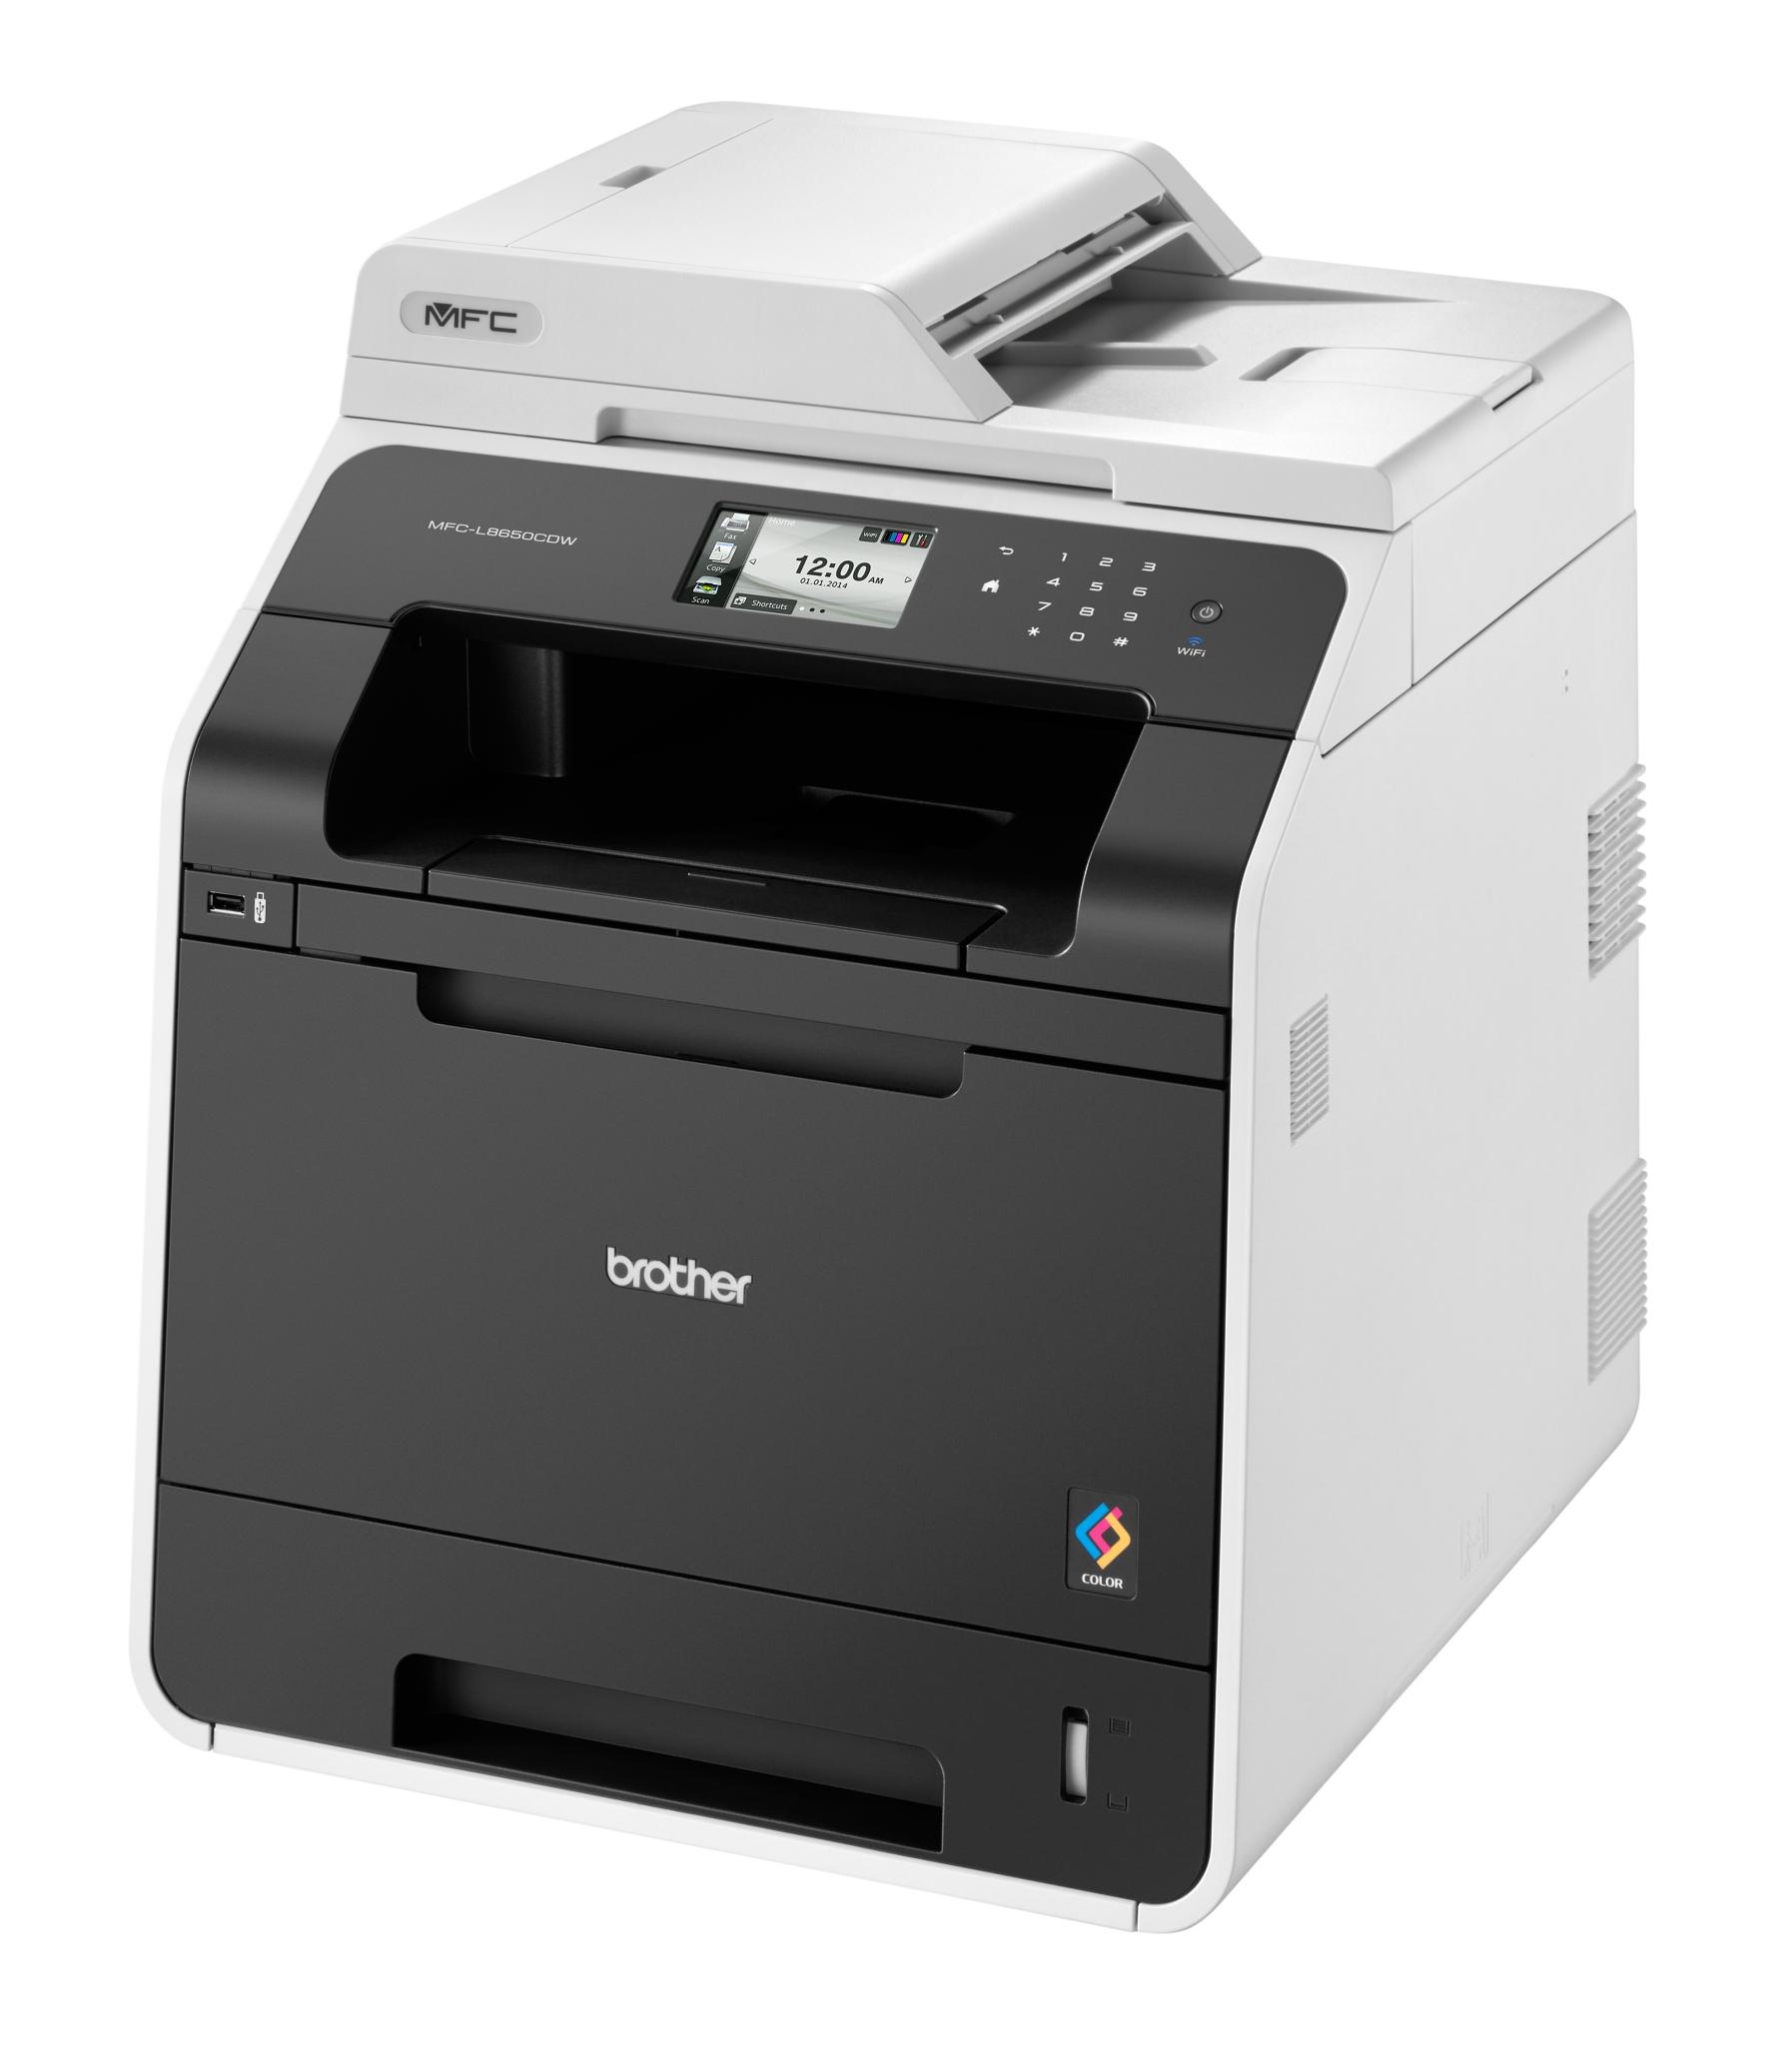 Brother MFC – L8650CDW 499,00 Euro*